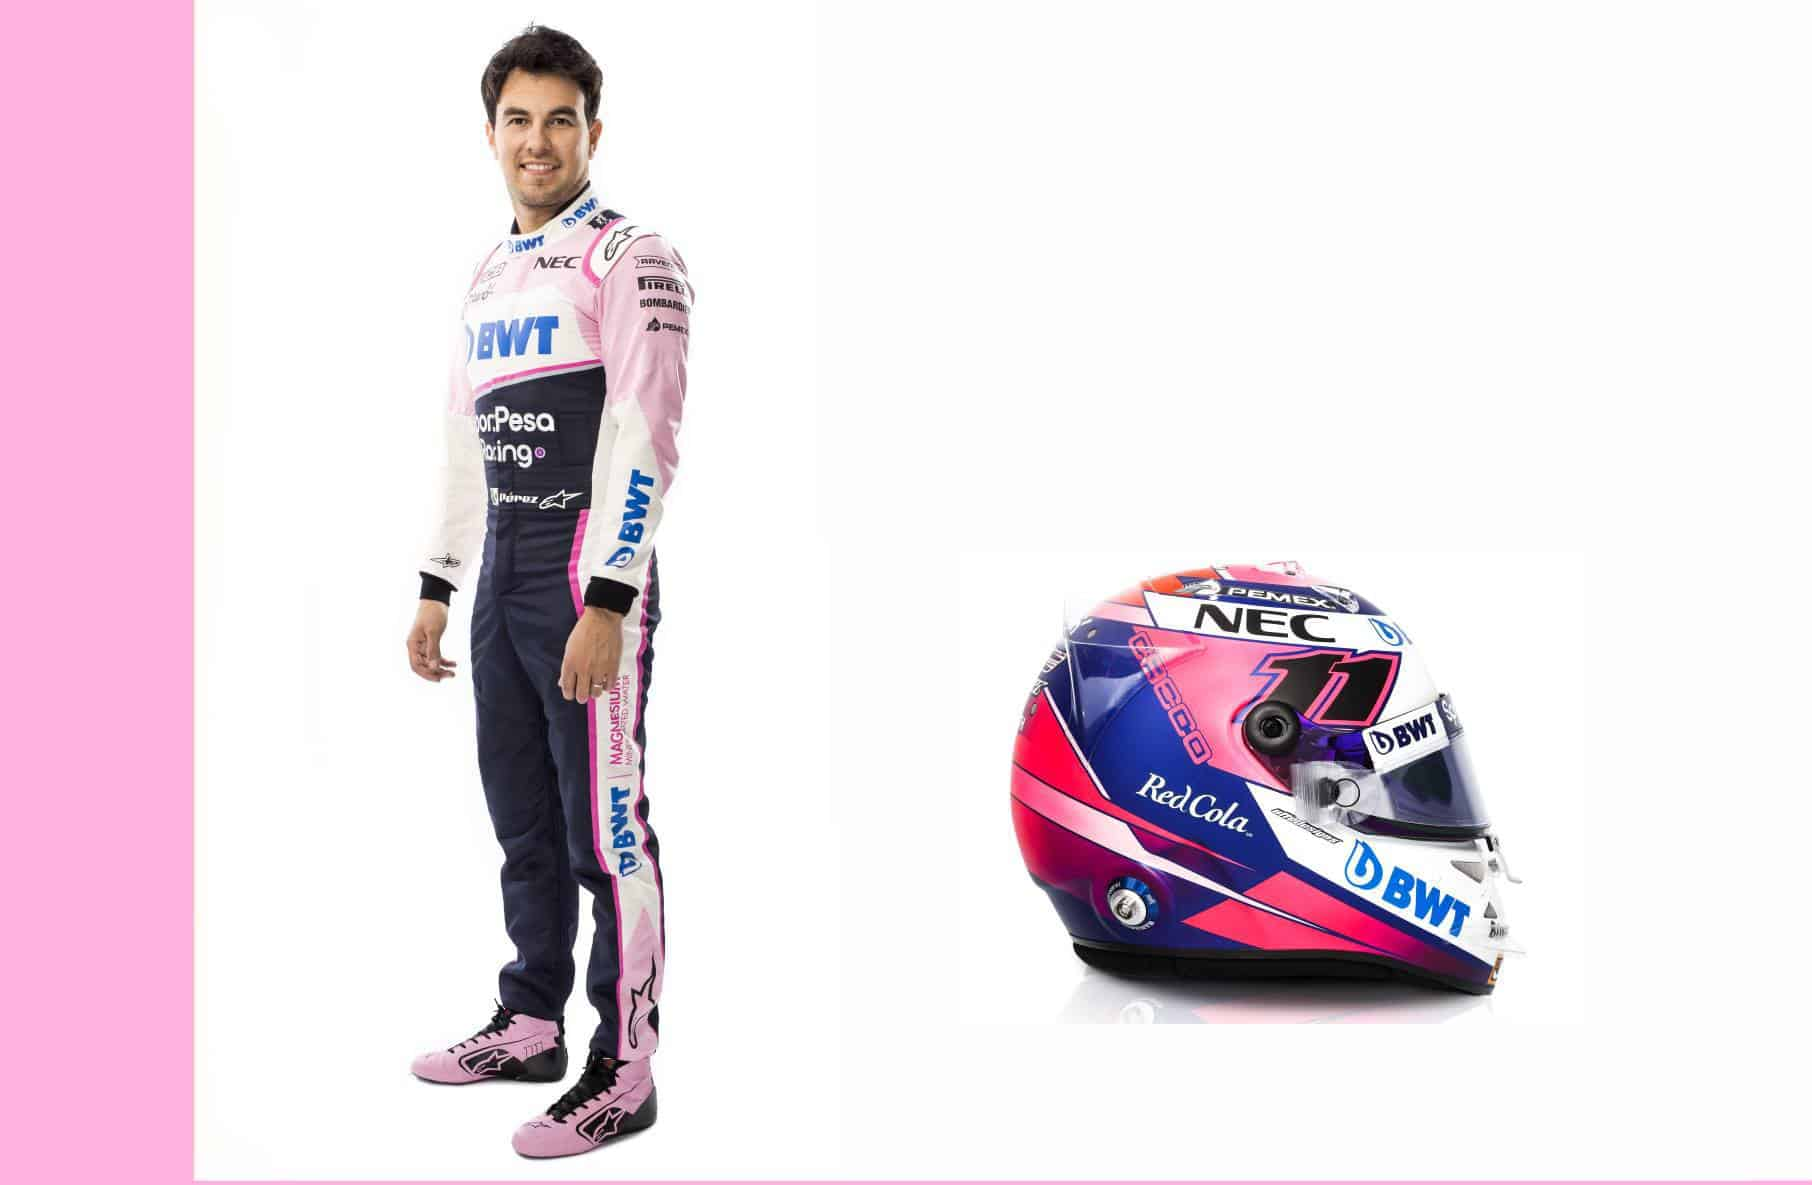 Sergio-Perez-Racing Point driver-portrait-and-helmet-F1-2019 edited by MAXF1net